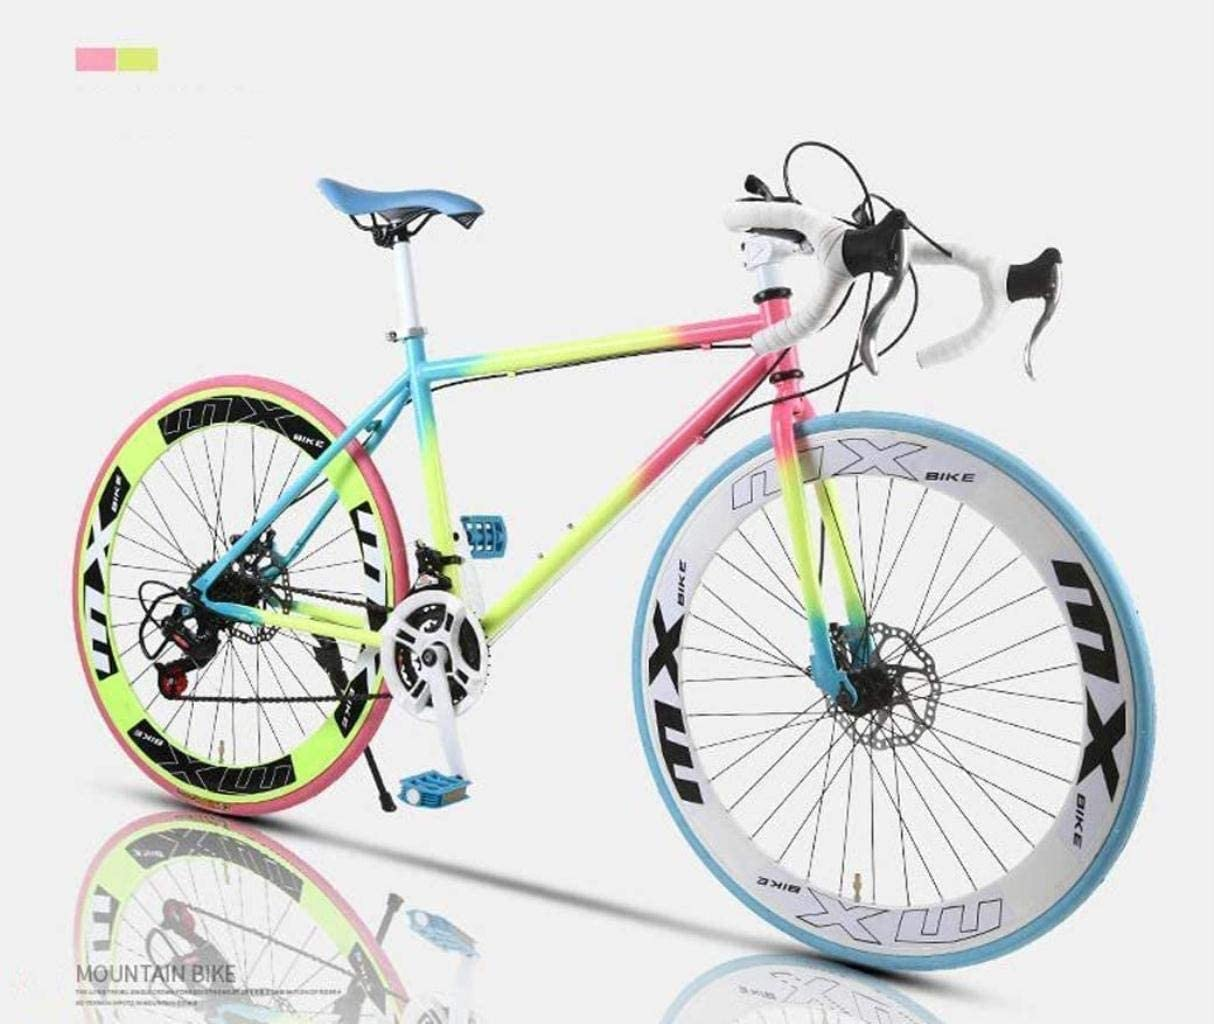 MJY Road Bicycle, 24-Speed 26 inch Bikes, Double Disc Brake, High Carbon Steel Frame, Road Bicycle Racing, Men's and Women Adult 6-24,60knife